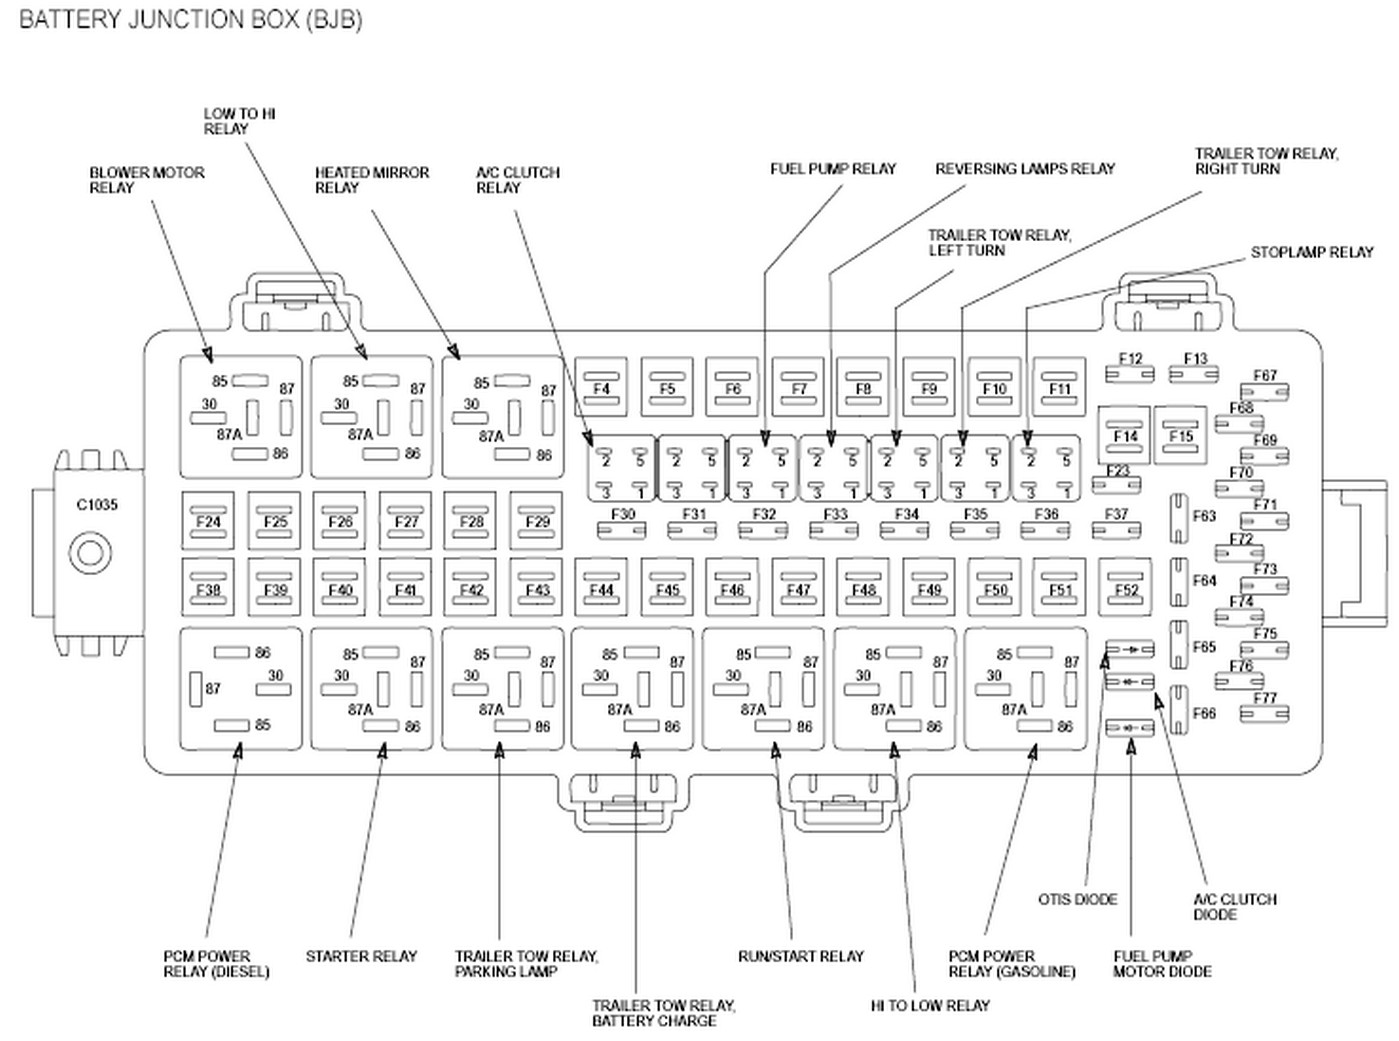 2011 ford f250 fuse box diagram Zoinyhu 2011 ford f250 fuse box diagram image details fuse box diagram 2011 ford f250 at soozxer.org